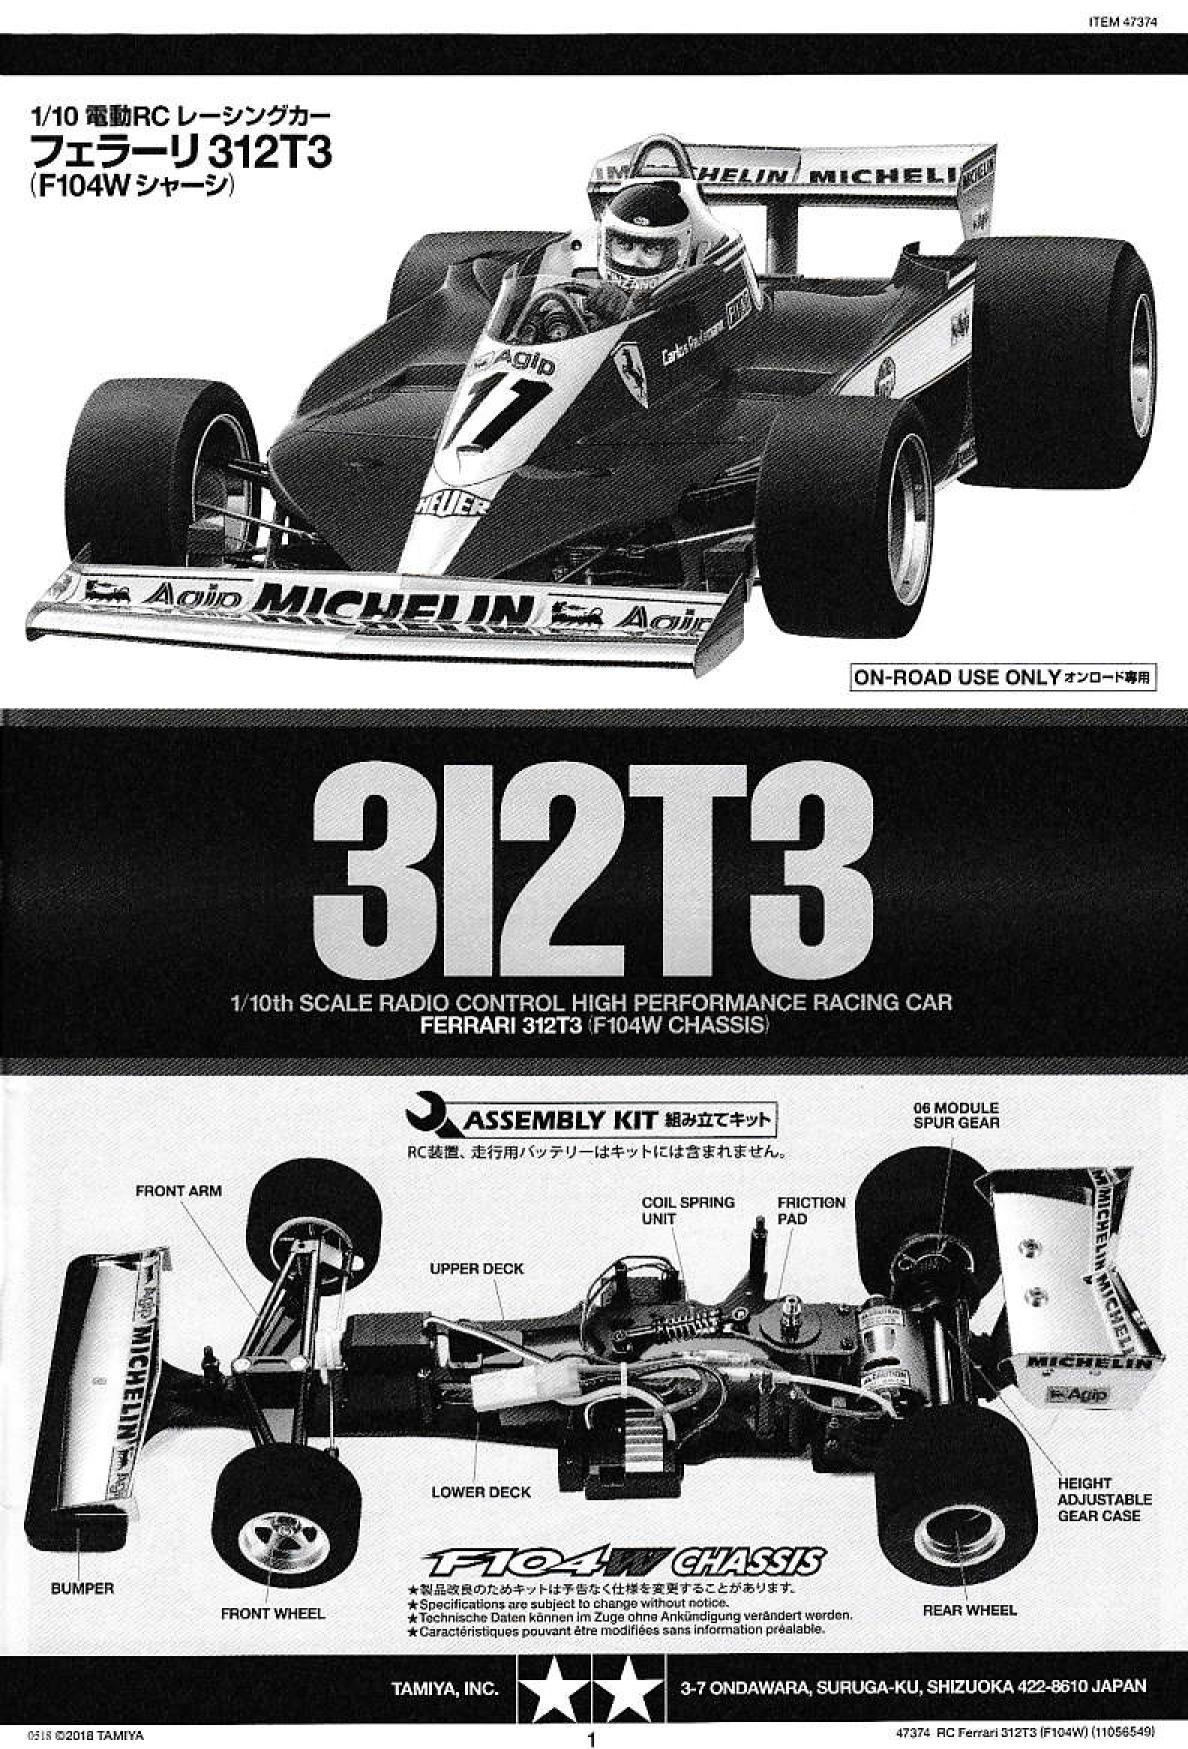 Assembly manual of Tamiya 47374 Ferrari 312T3 F104W Chassis